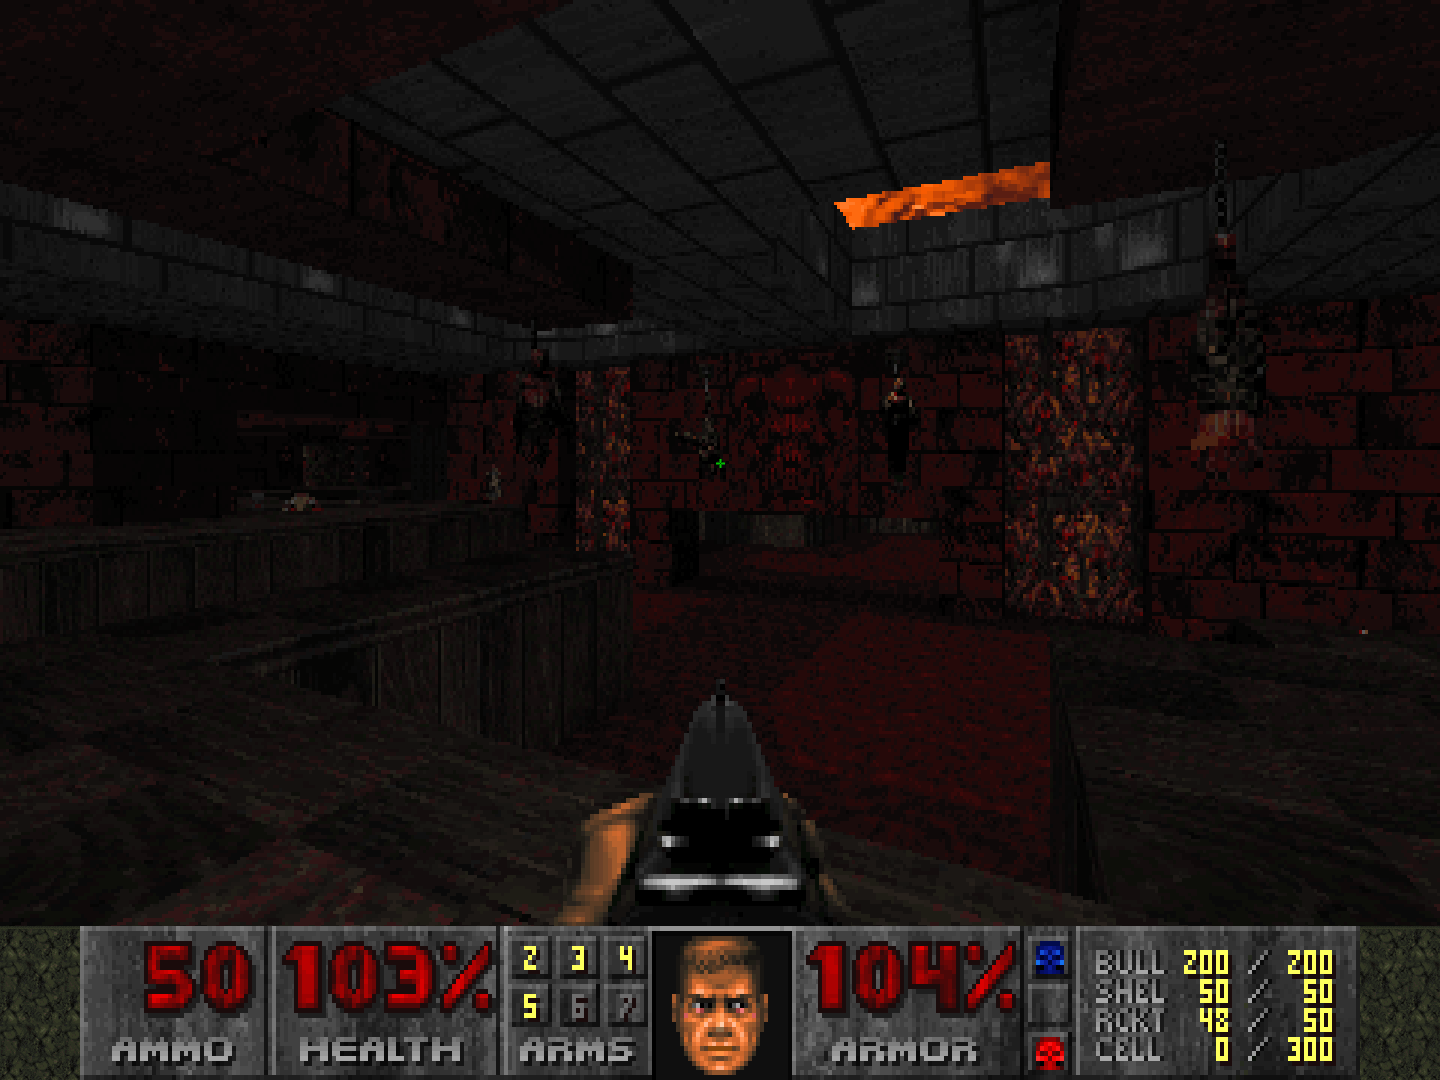 screenshot_doom_20190nbk6i.png